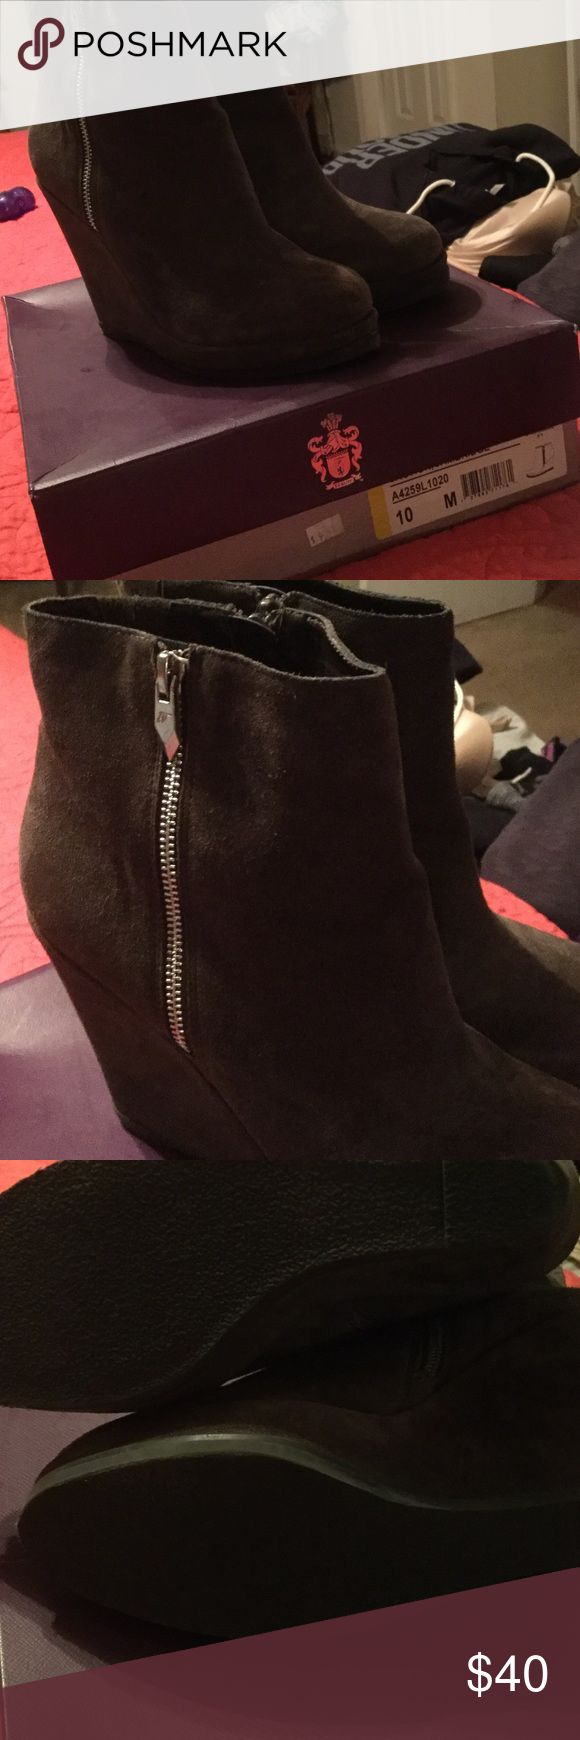 Fergie suede wedge booties Cute booties with jeans or leggings. Color is between olive and brown. Only worn a couple of times. Fergie Shoes Ankle Boots & Booties